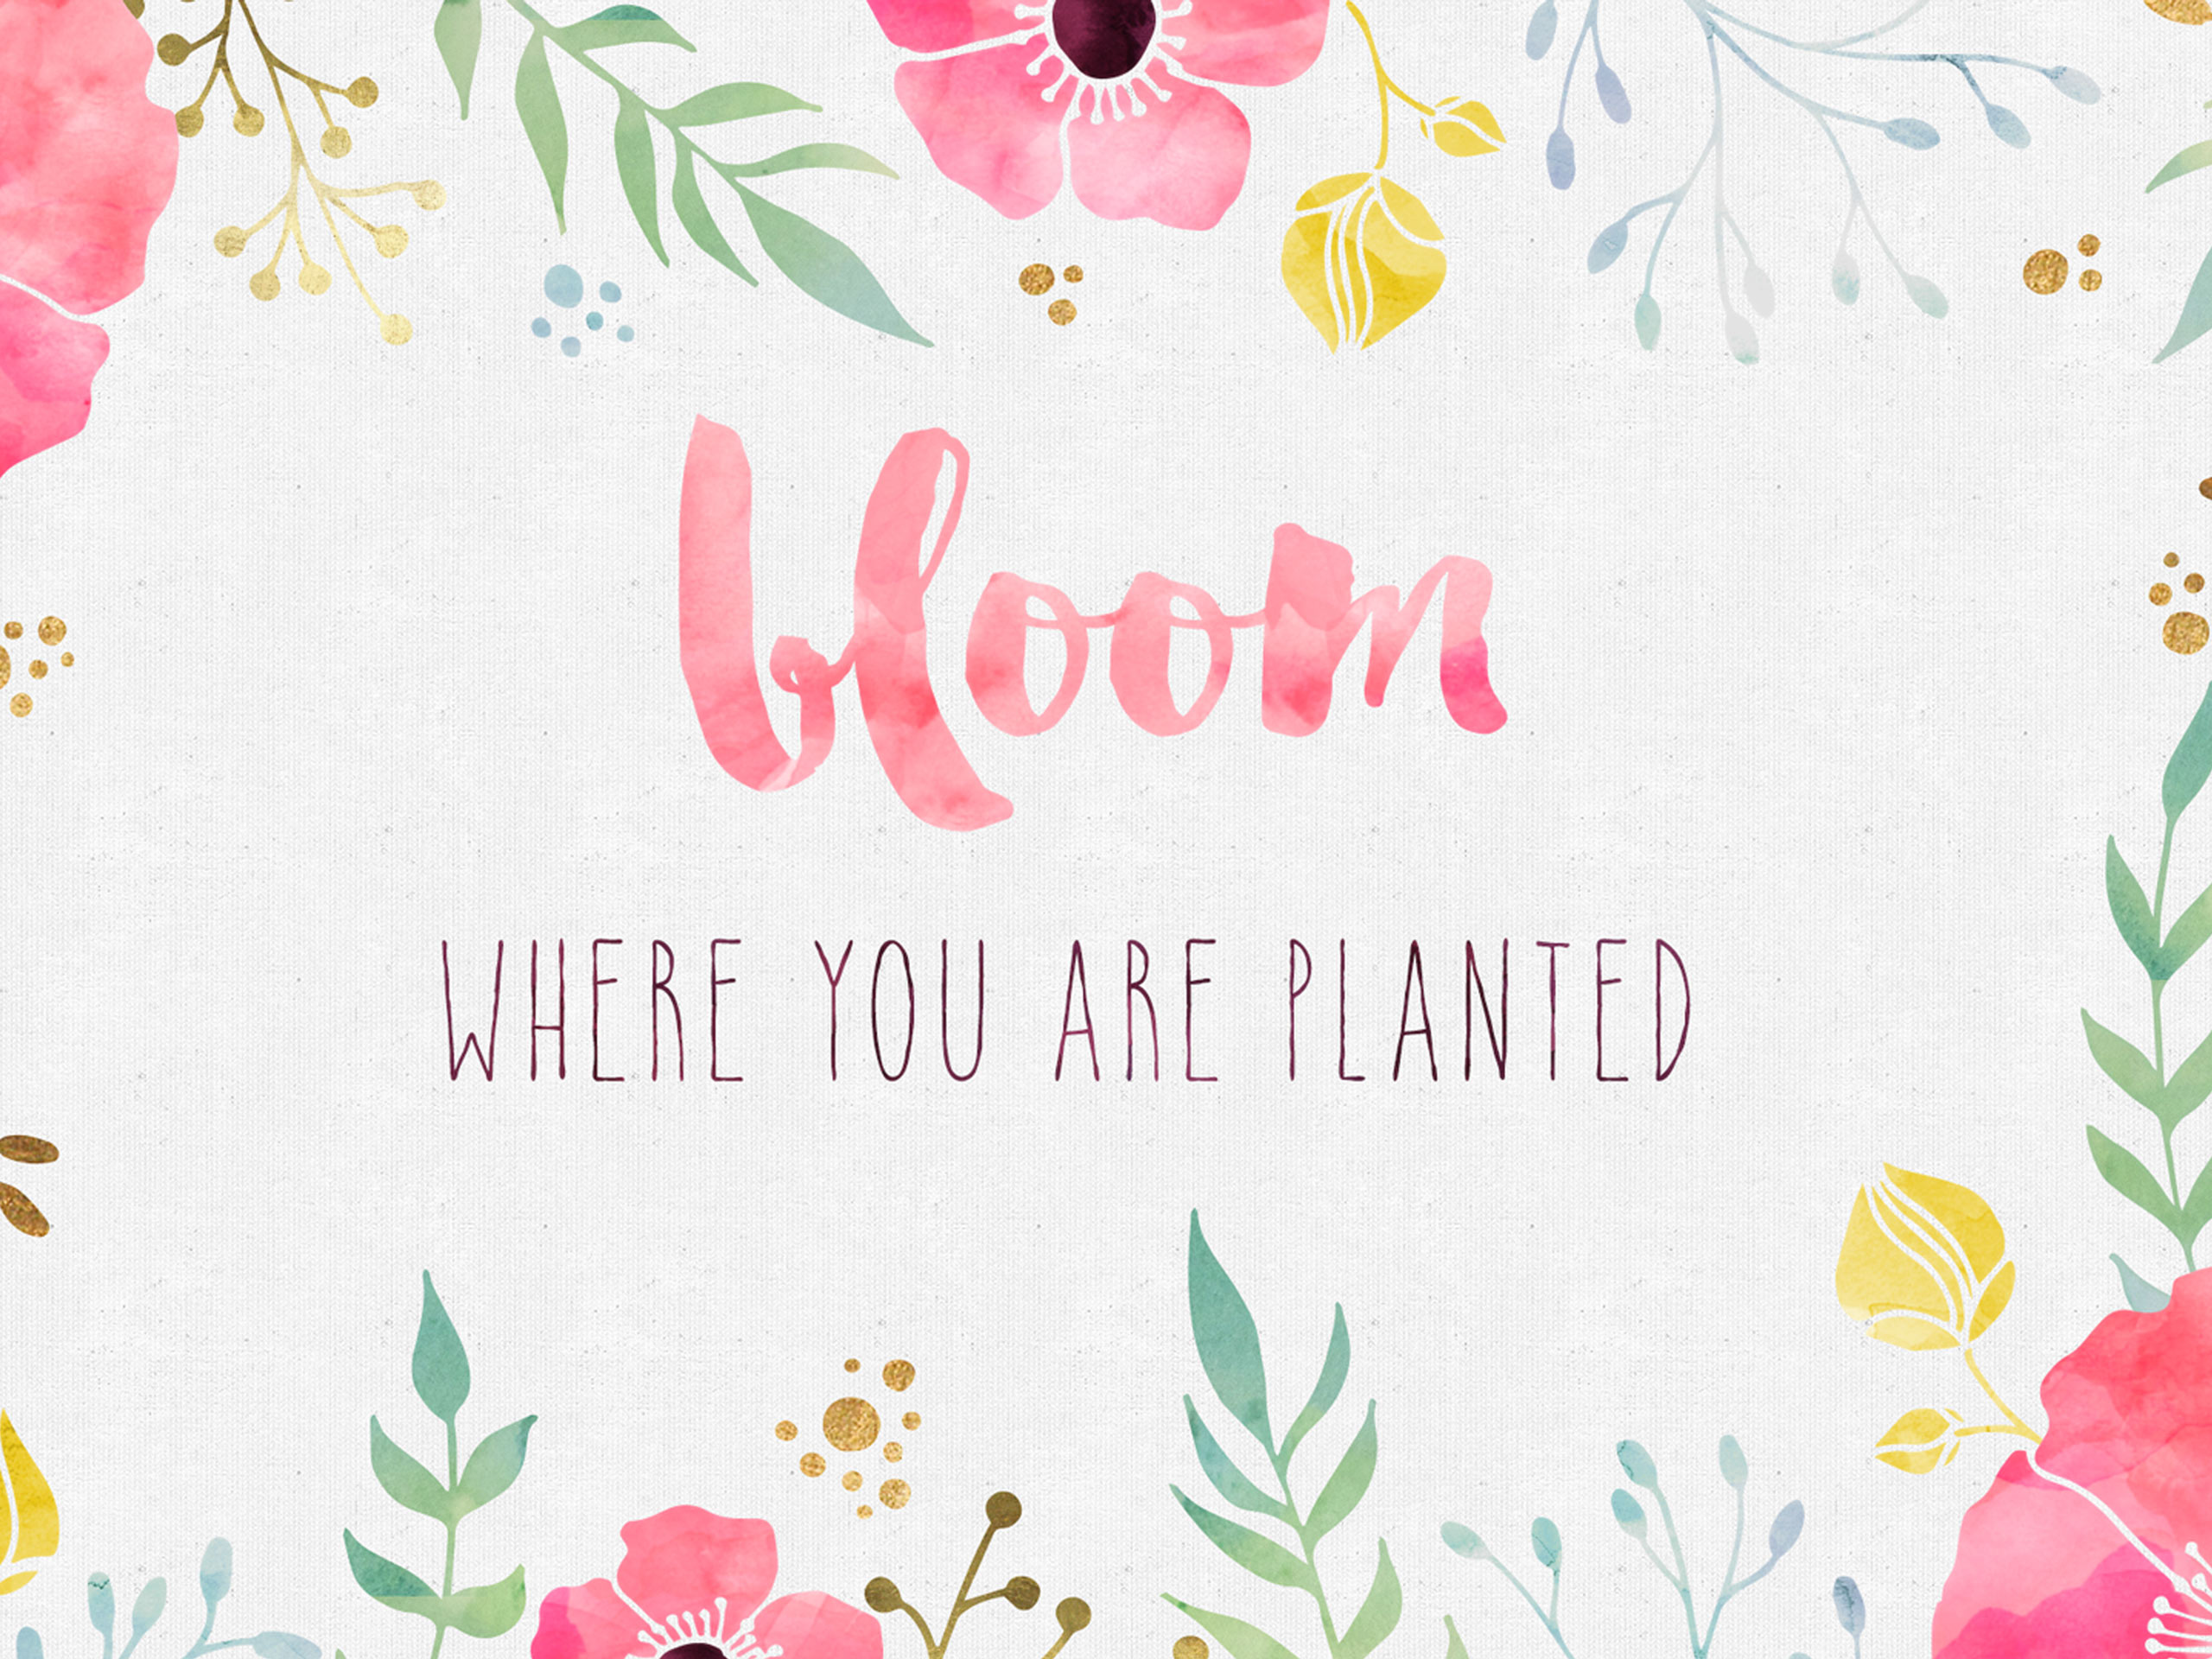 Free Desktop Wallpaper U2013 Bloom Where You Are Planted